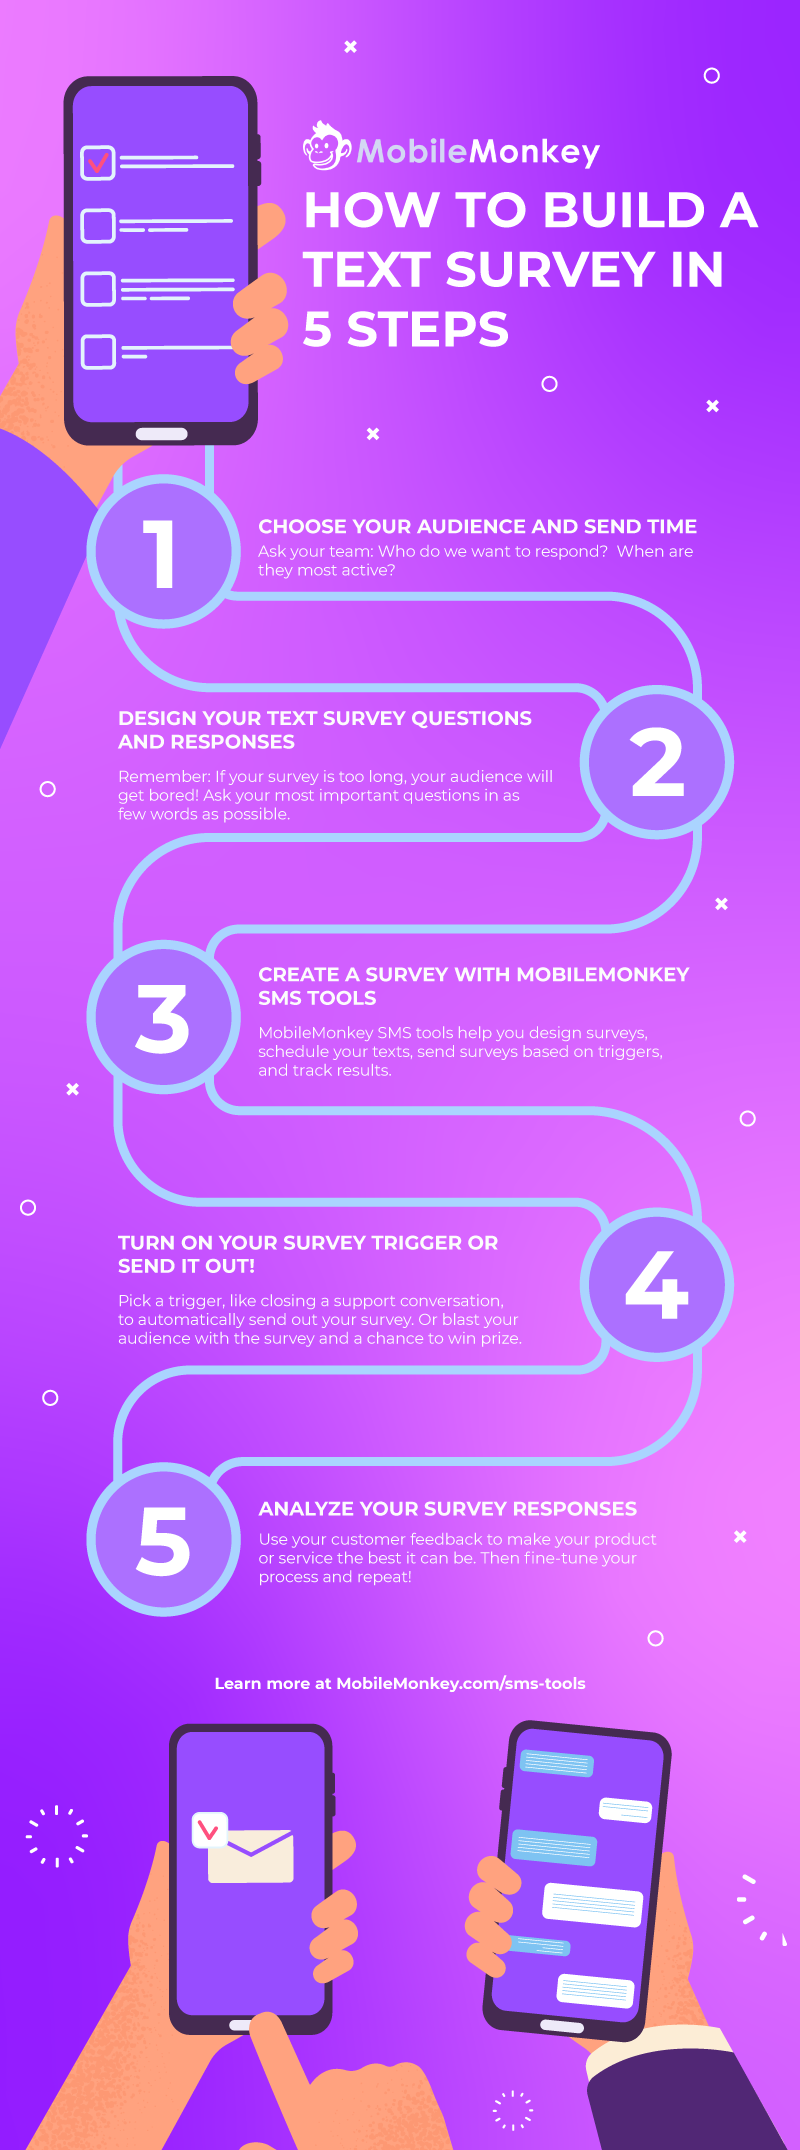 How to build a text survey in 5 steps.